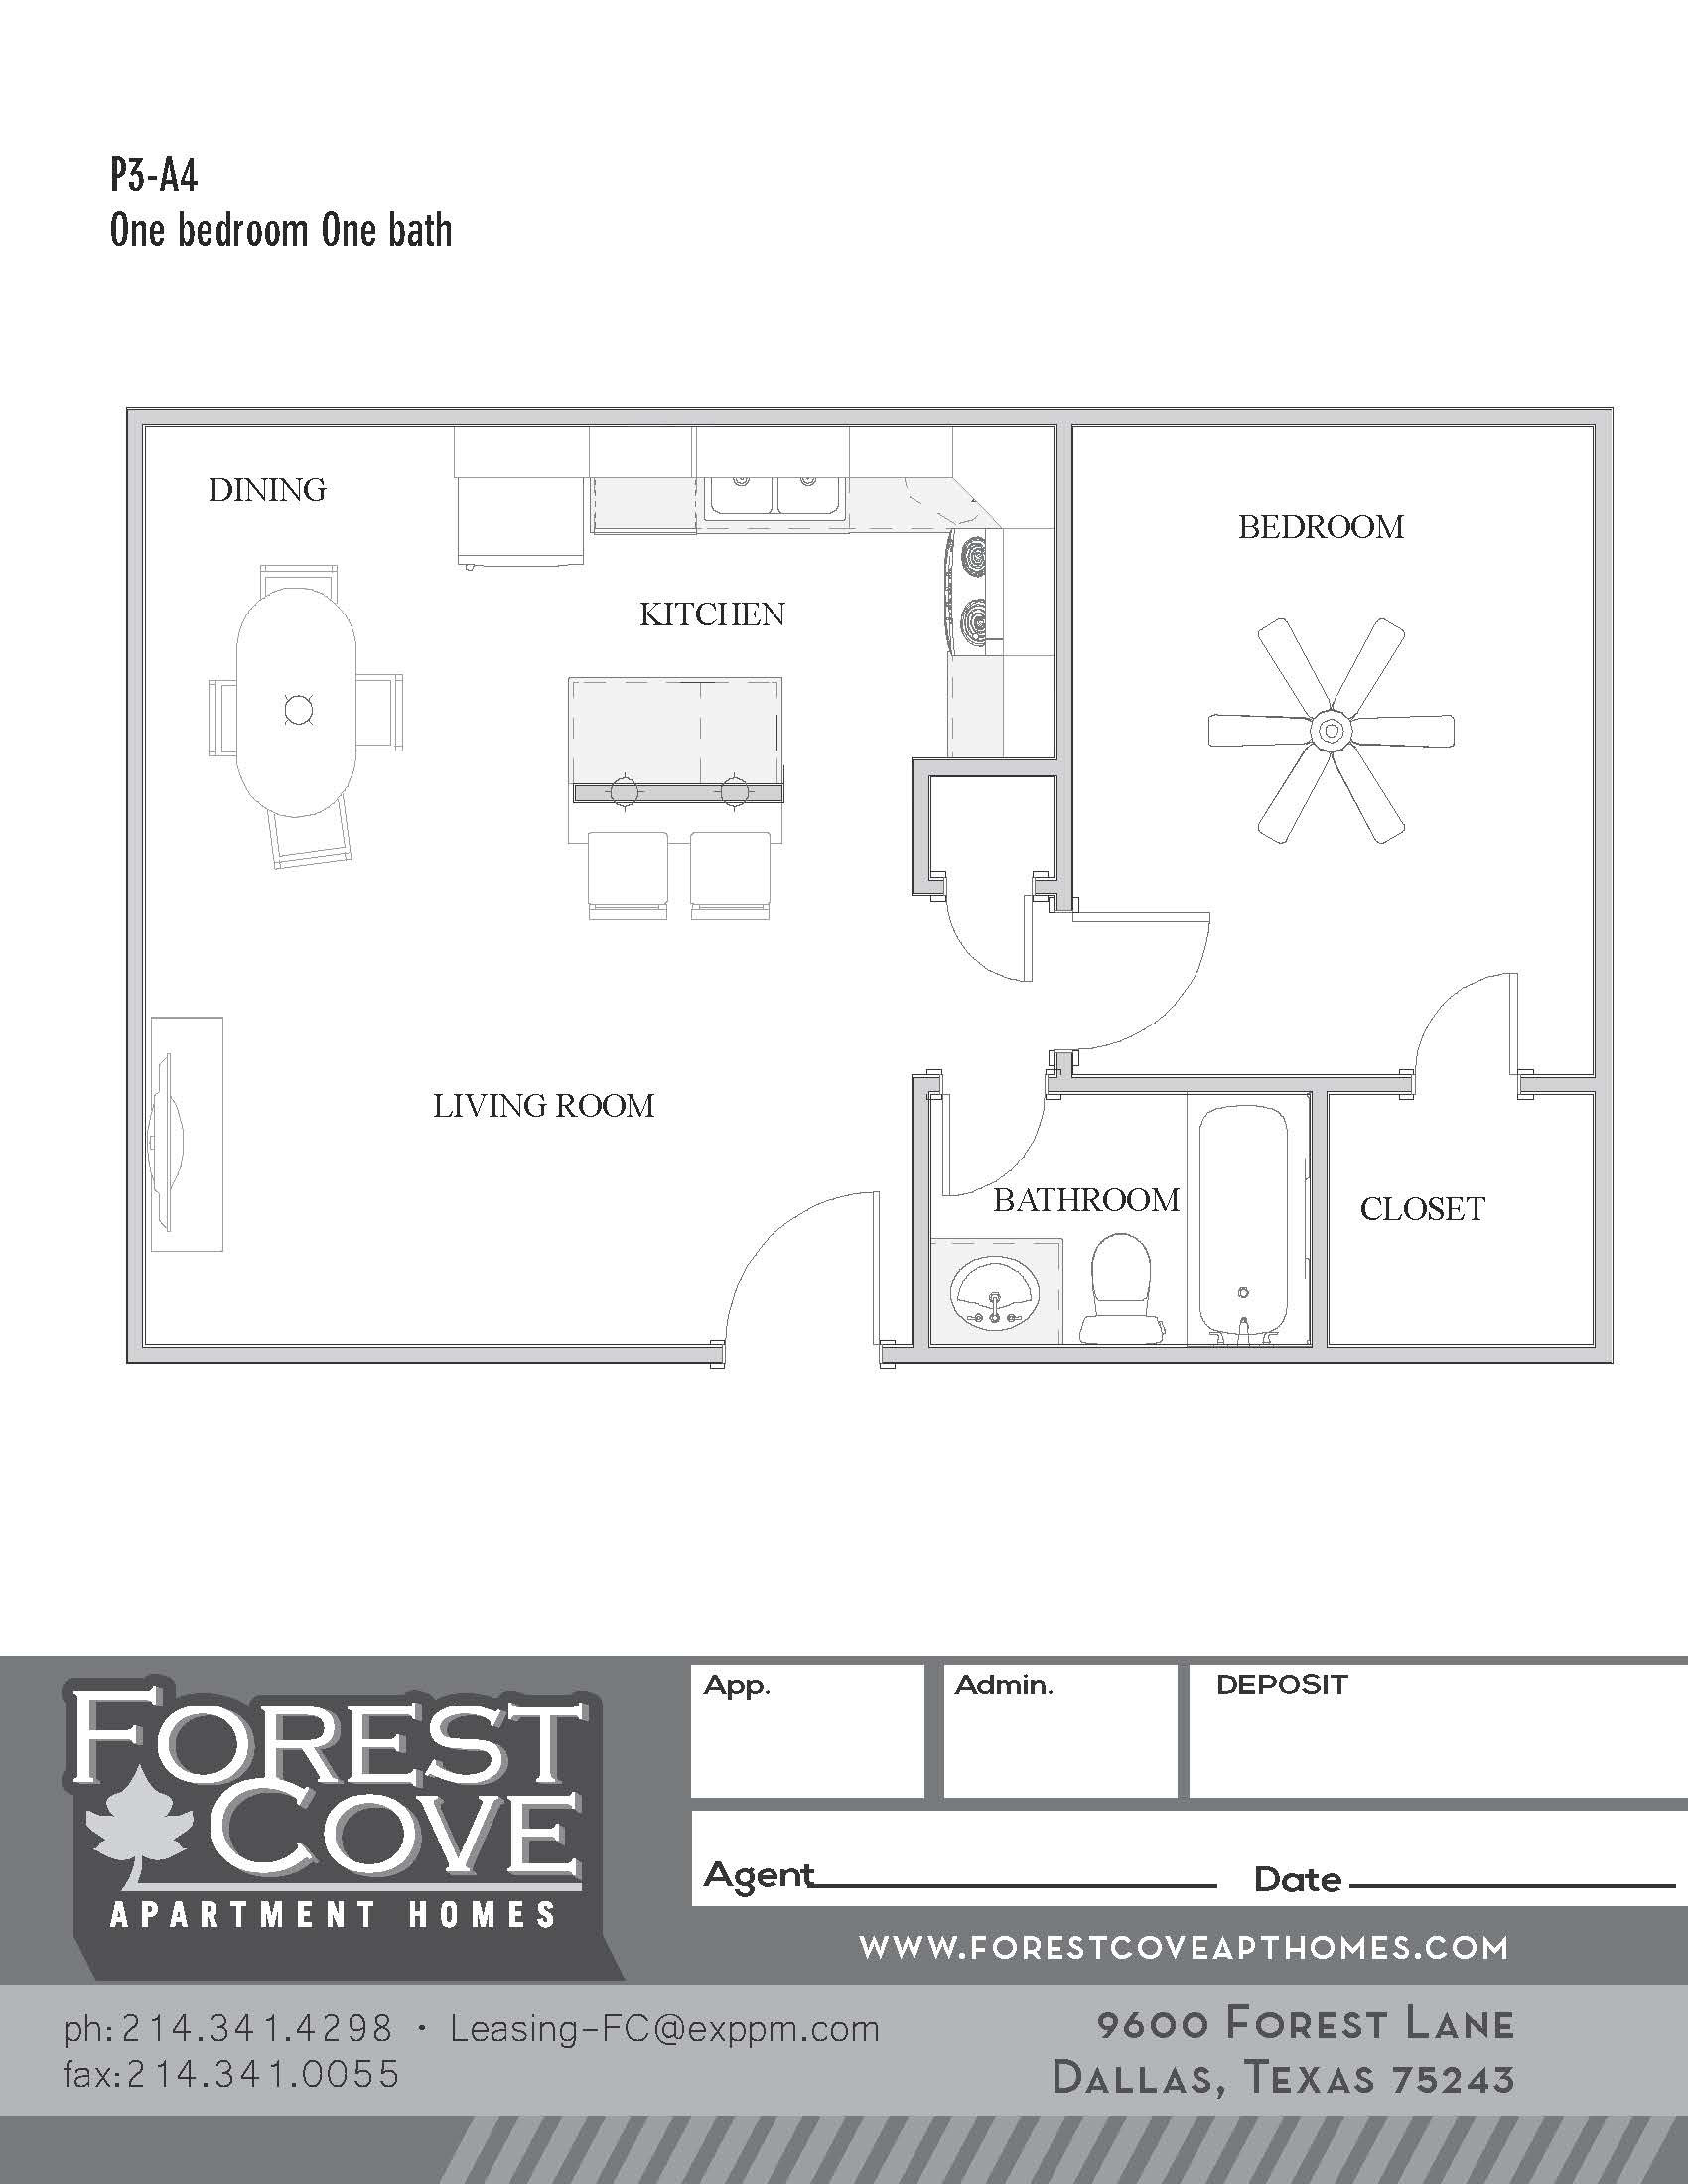 Forest Cove Apartments - Floorplan - 3-A4